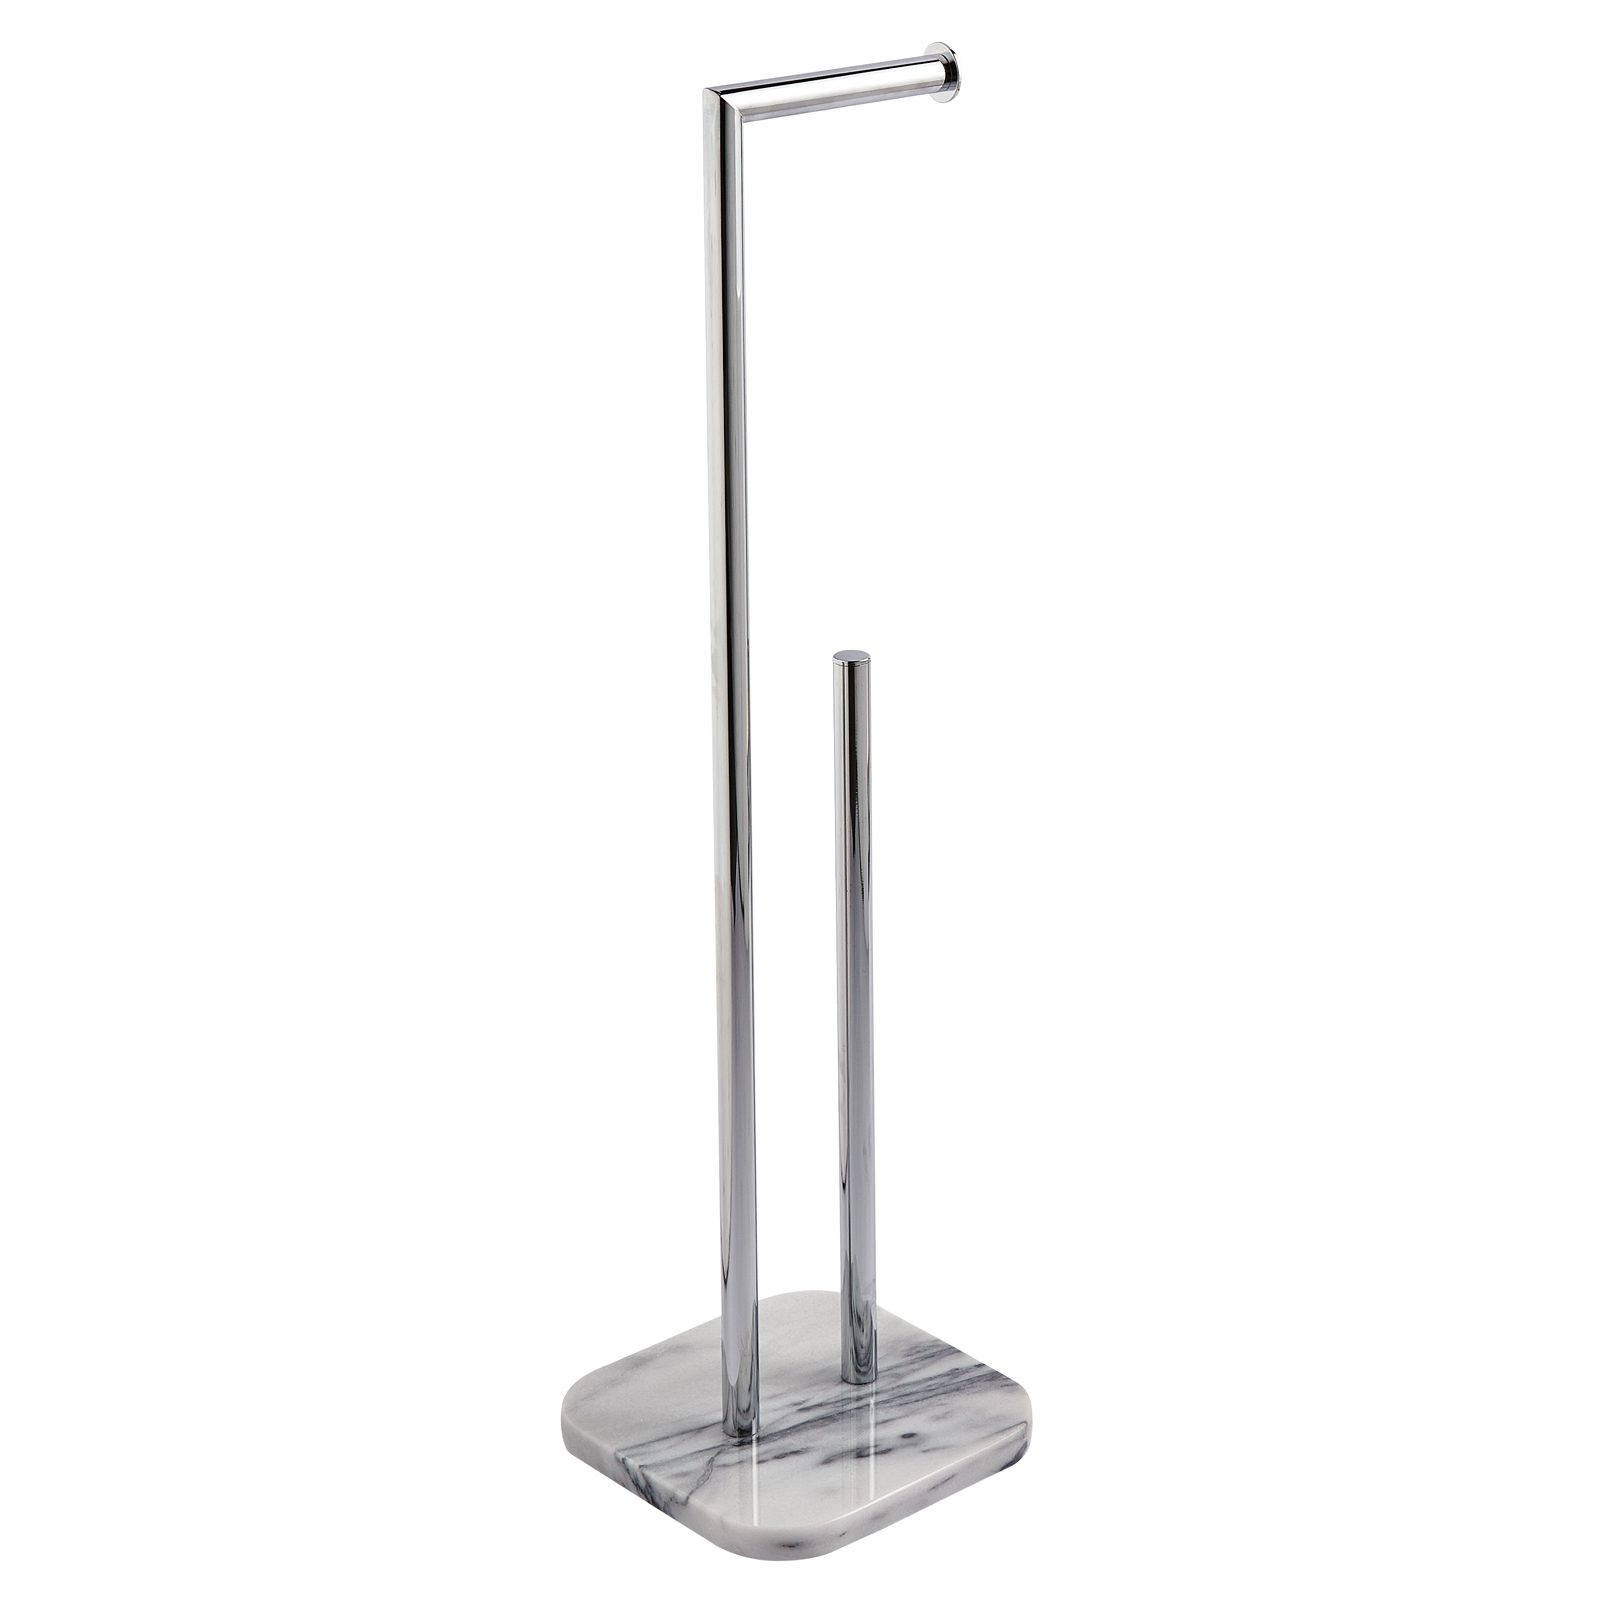 "Showerdrape Marble Free Standing ""Athena"" Toilet Roll Holder & Spare Toilet Roll Holder"